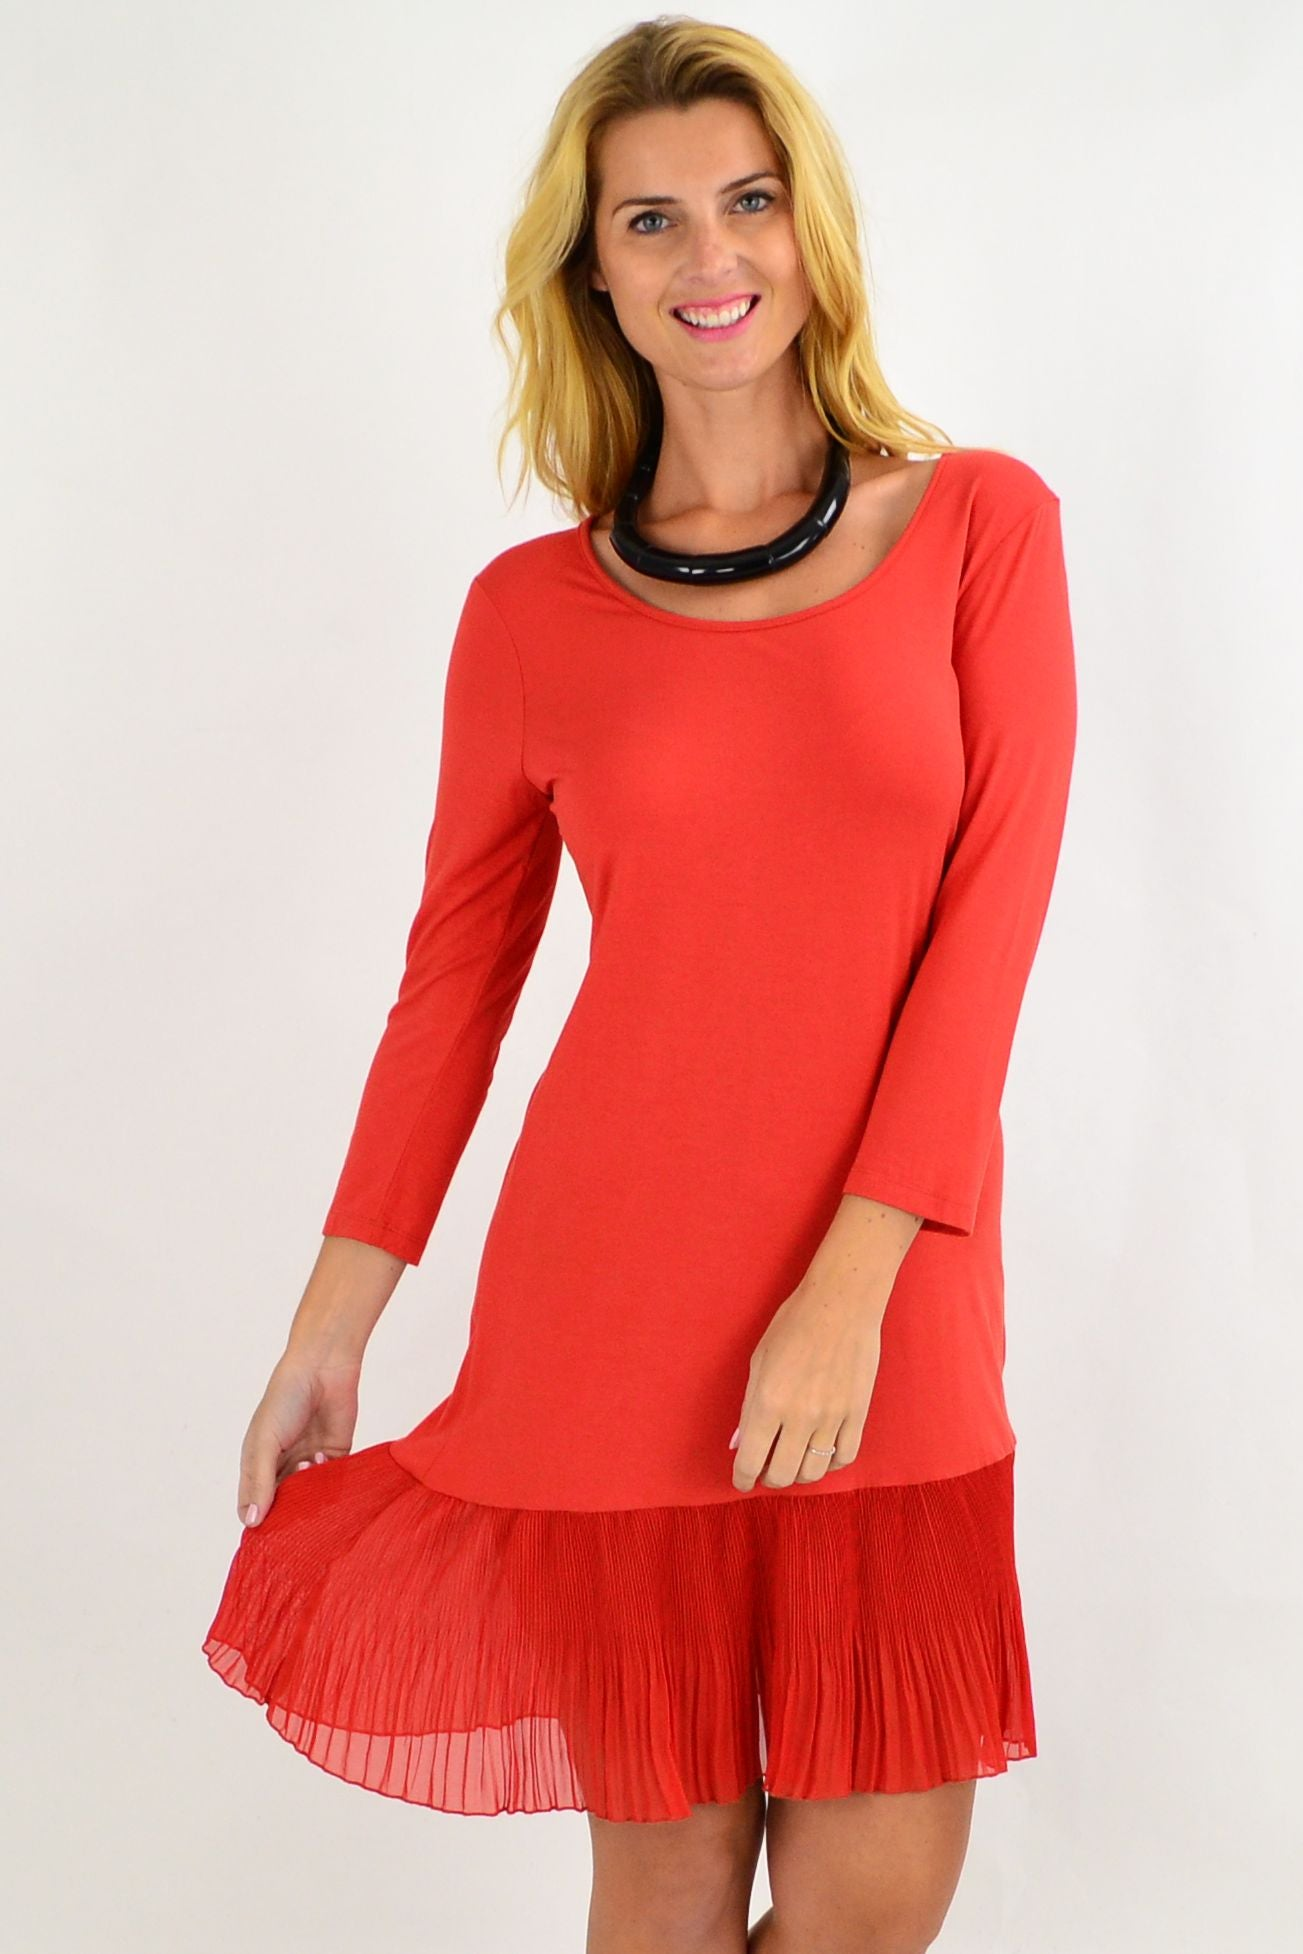 Clarity Burnt Orange Basic | I Love Tunics | Tunic Tops | Tunic | Tunic Dresses  | womens clothing online